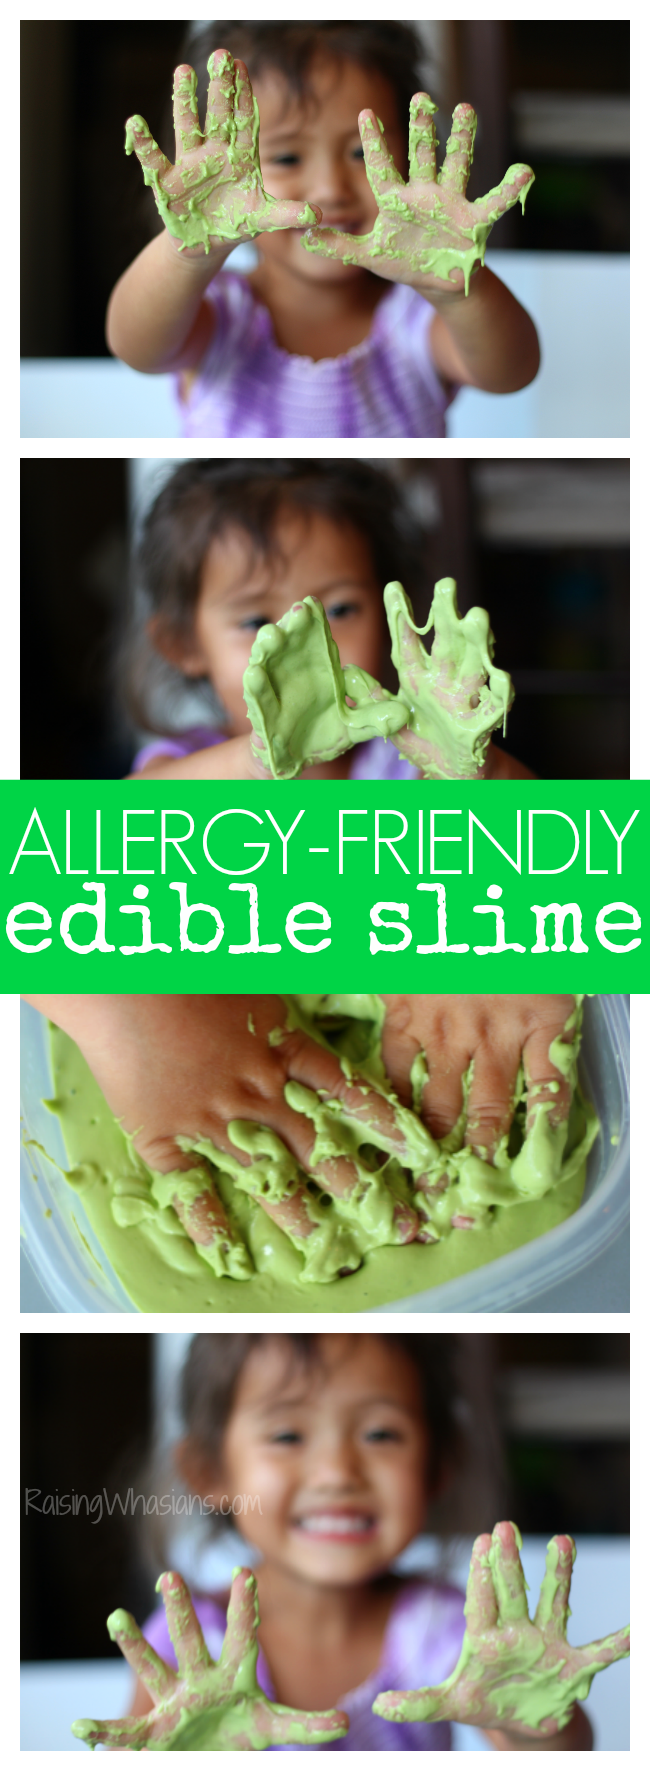 Allergy-Friendly Edible Slime for Toddlers | Only 3 everyday home ingredients are needed for a fun kids activity - perfect DIY slime for kids with allergies Easy slime recipe that works for toddlers. This non-toxic slime is a borax free slime recipe you don't want to miss. #SlimeRecipe #DIY #STEM #Preschool #Slime